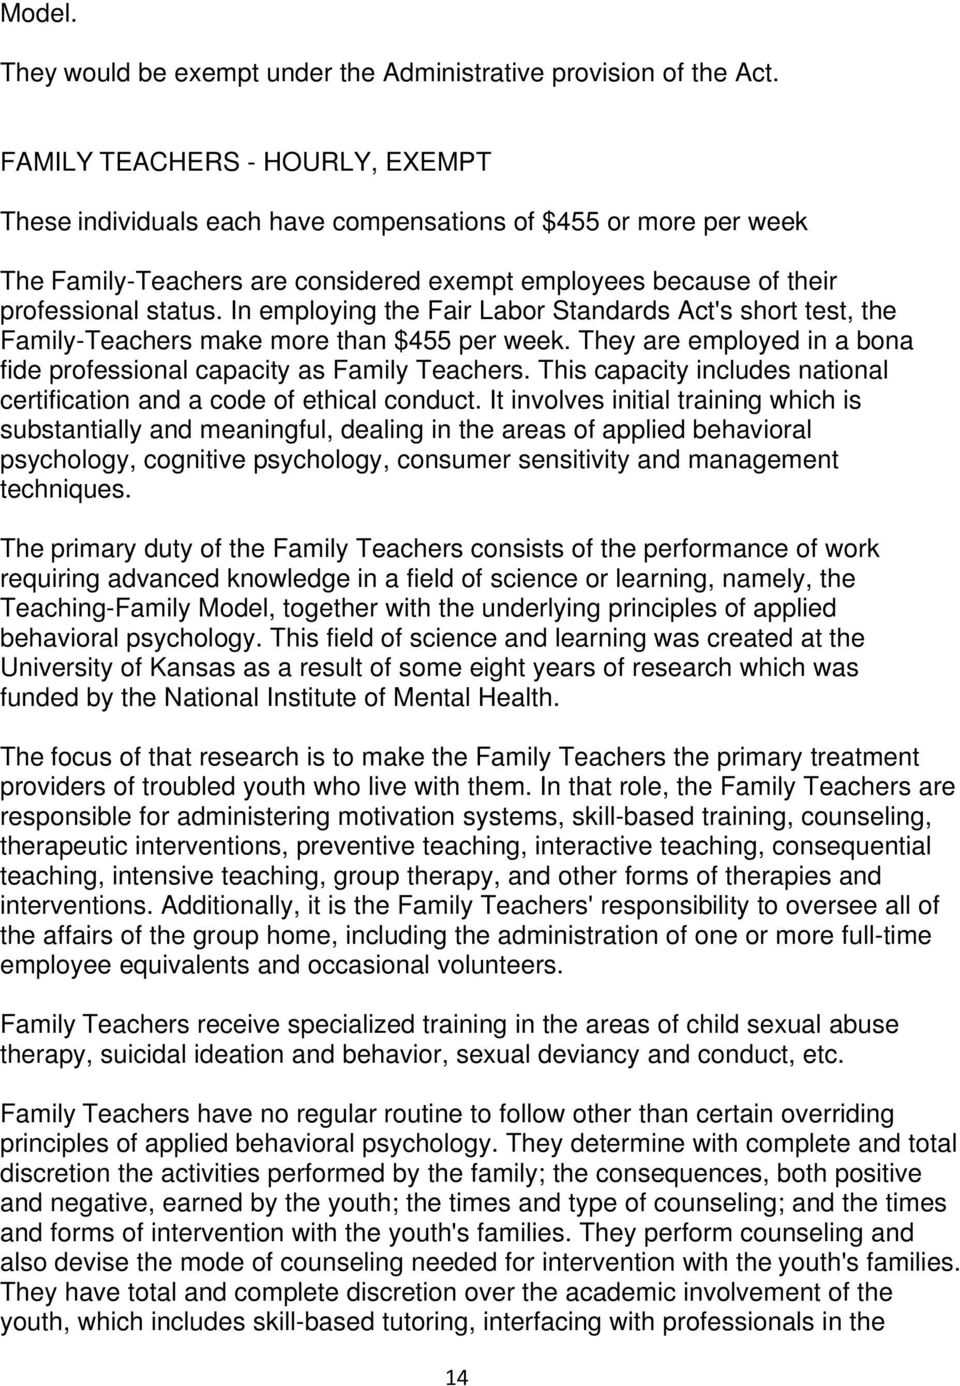 In employing the Fair Labor Standards Act's short test, the Family-Teachers make more than $455 per week. They are employed in a bona fide professional capacity as Family Teachers.